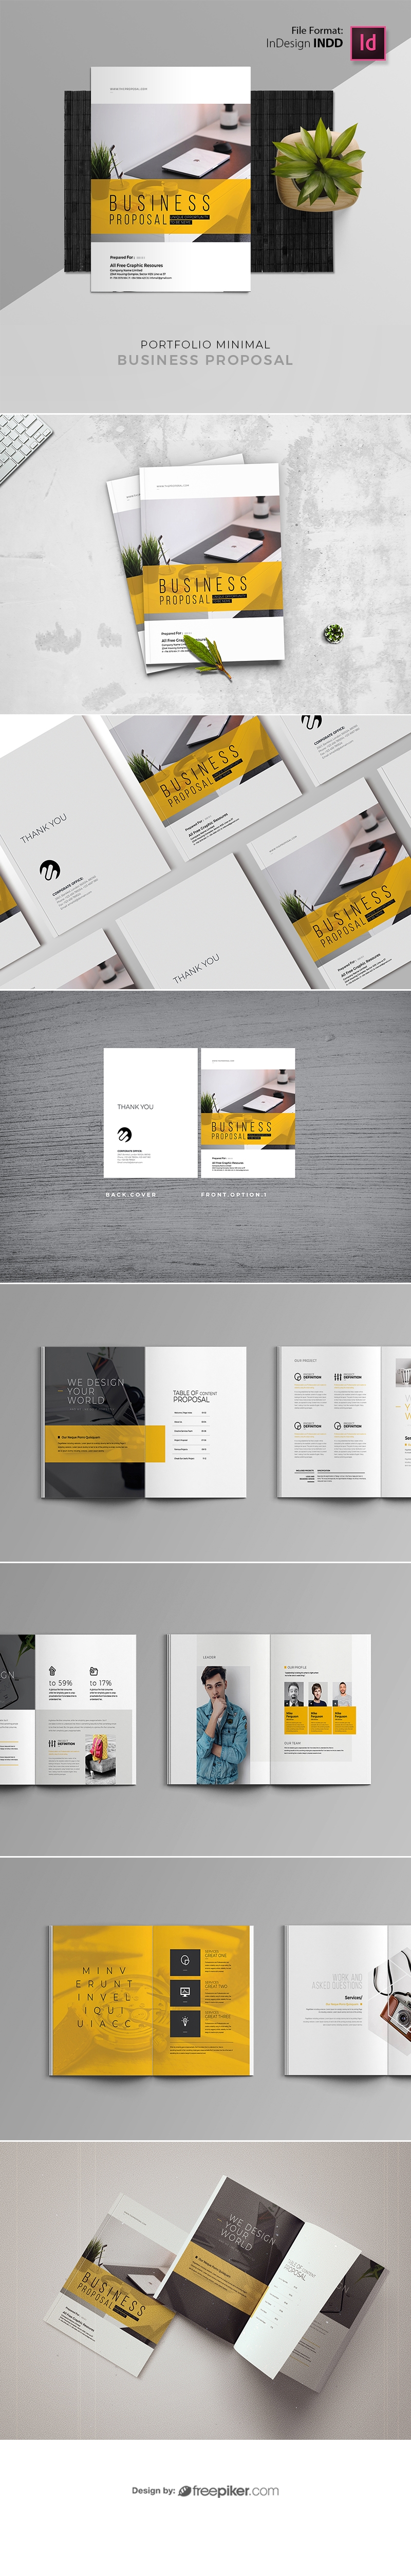 Simple Business Proposal With Yellow Accent